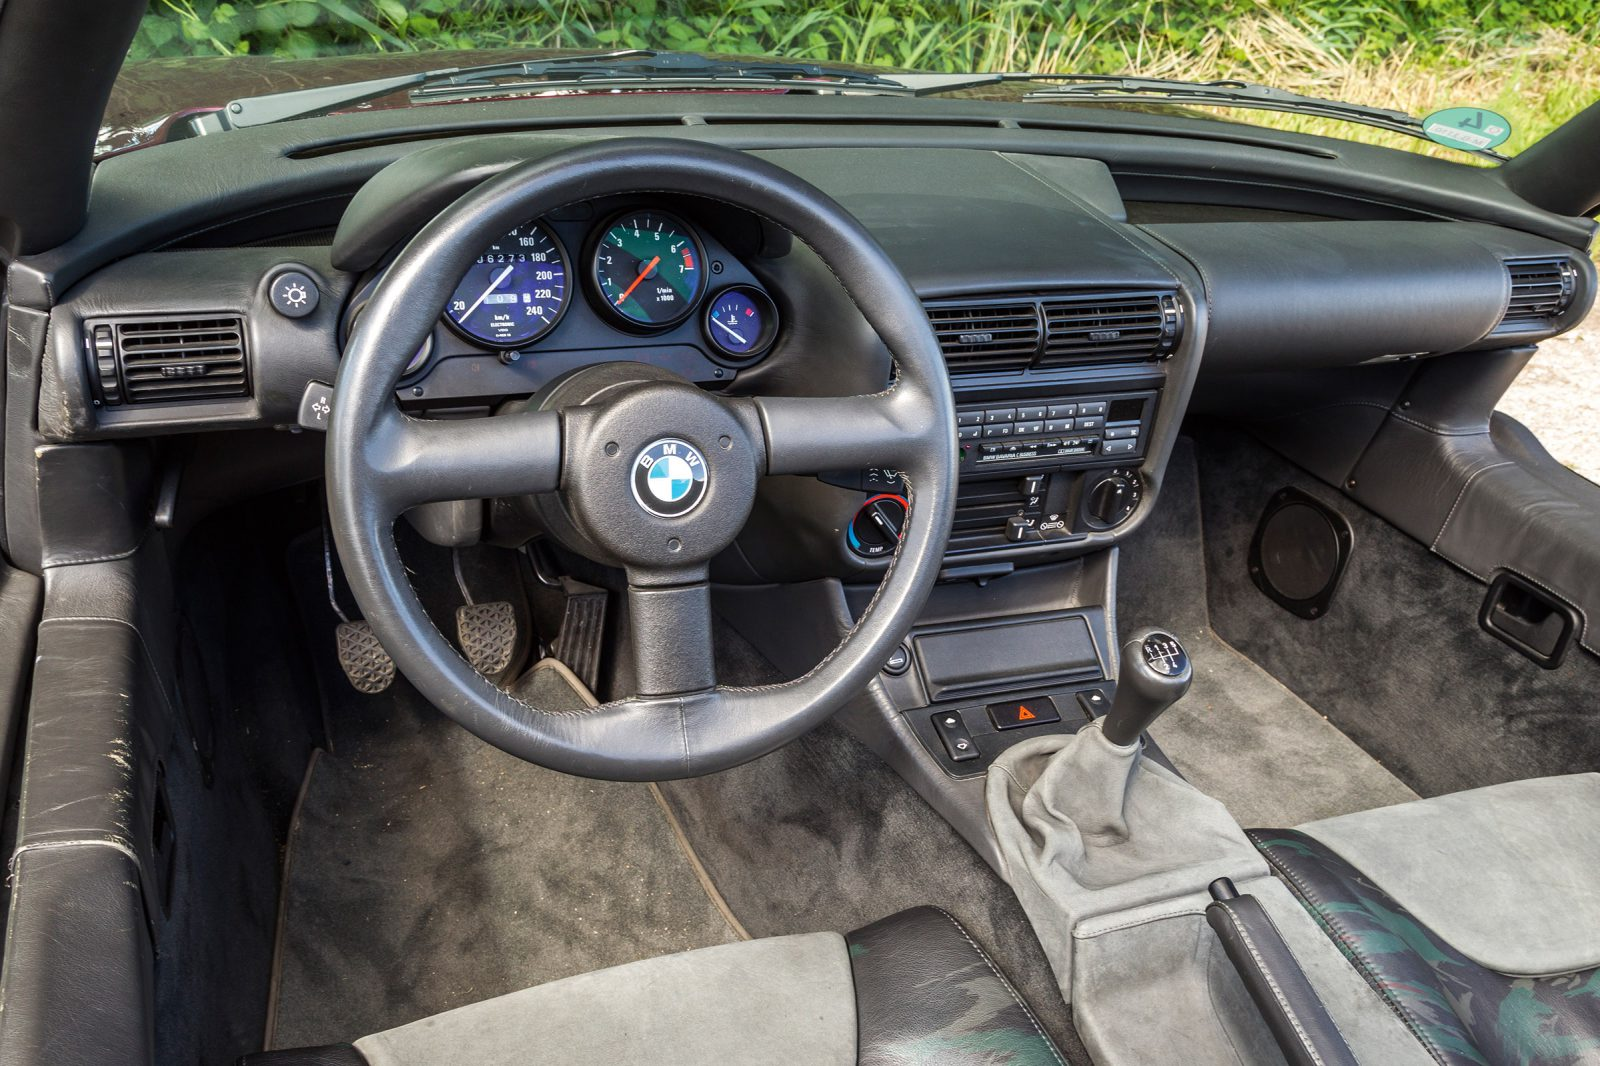 BMW Z1 dashboard